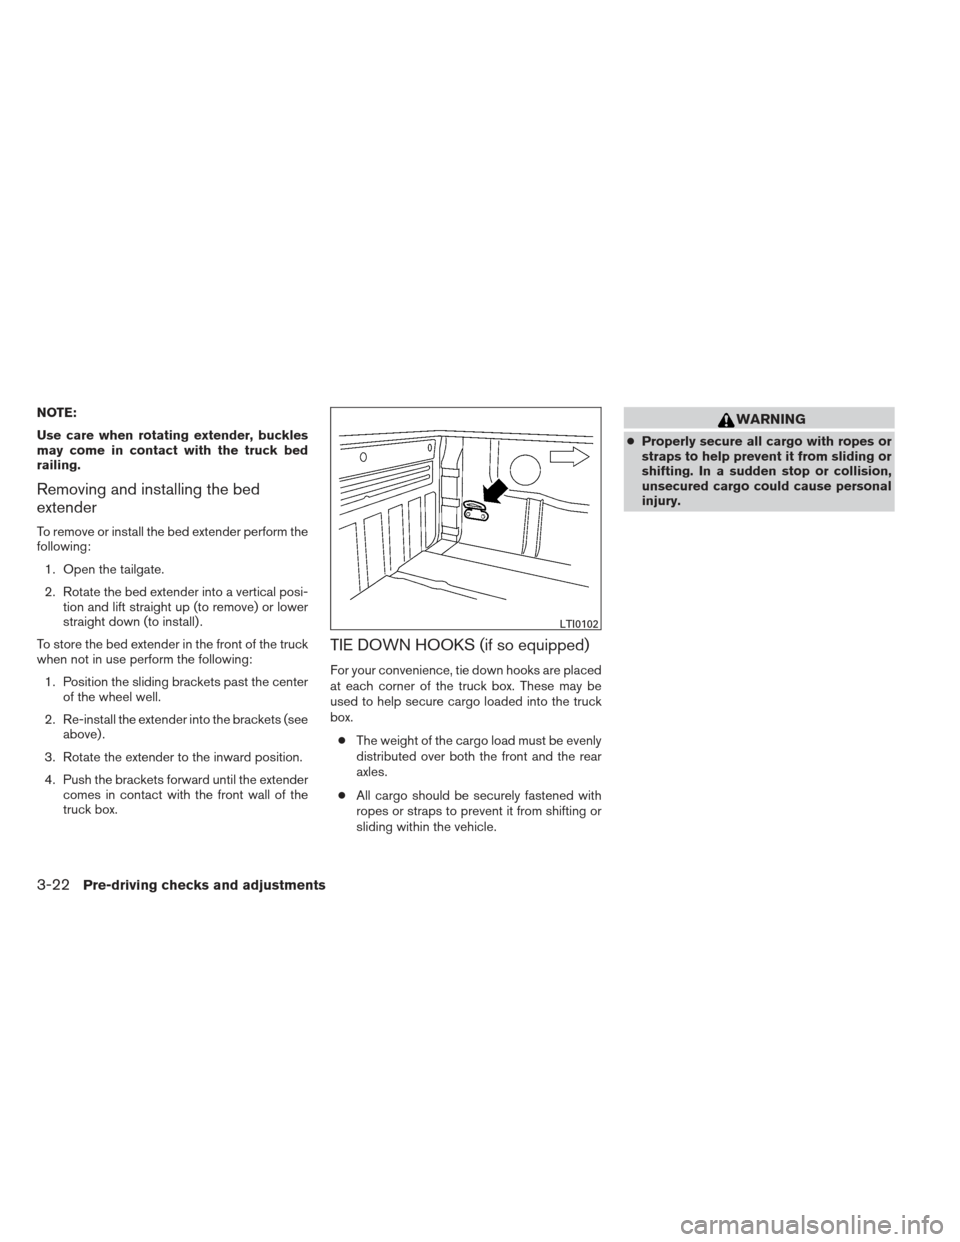 NISSAN FRONTIER 2013 D40 / 2.G Owners Manual NOTE: Use care when rotating extender, buckles may come in contact with the truck bed railing. Removing and installing the bed extender To remove or install the bed extender perform the following:1. O